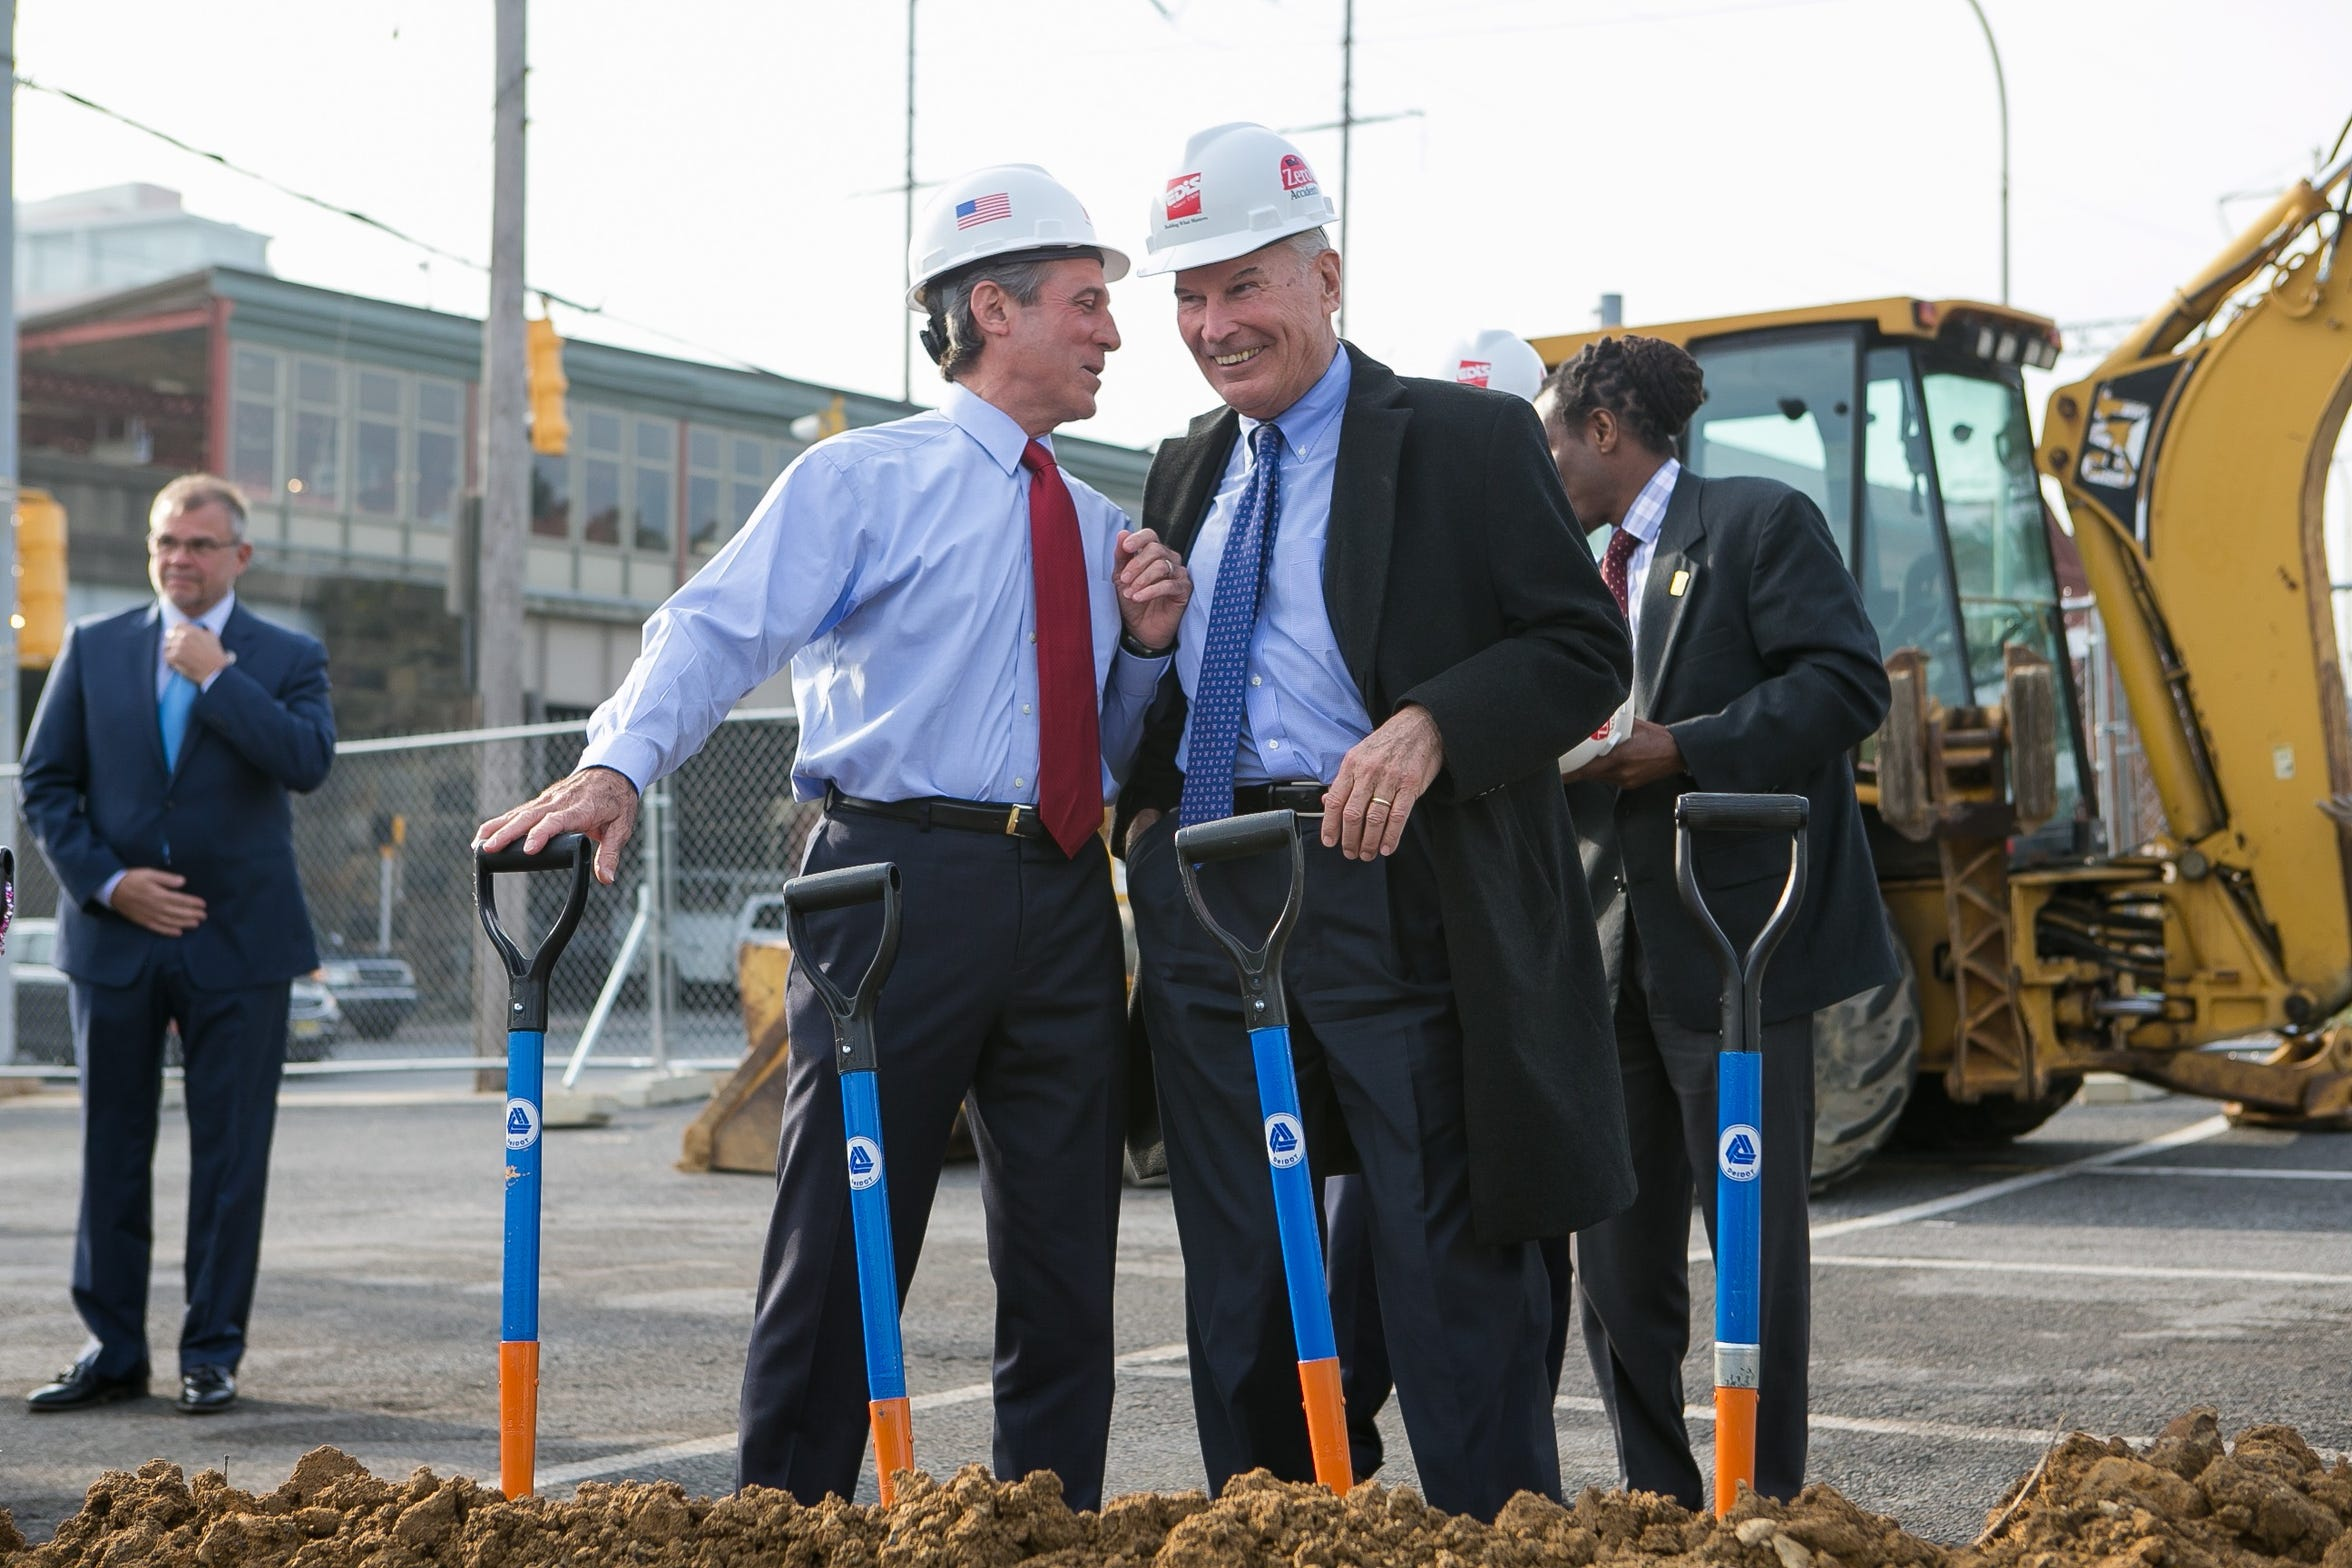 Wilmington Mayor Mike Purzycki smiles as he chats with Gov. John Carney at a groundbreaking ceremony to kick off a new transit center.